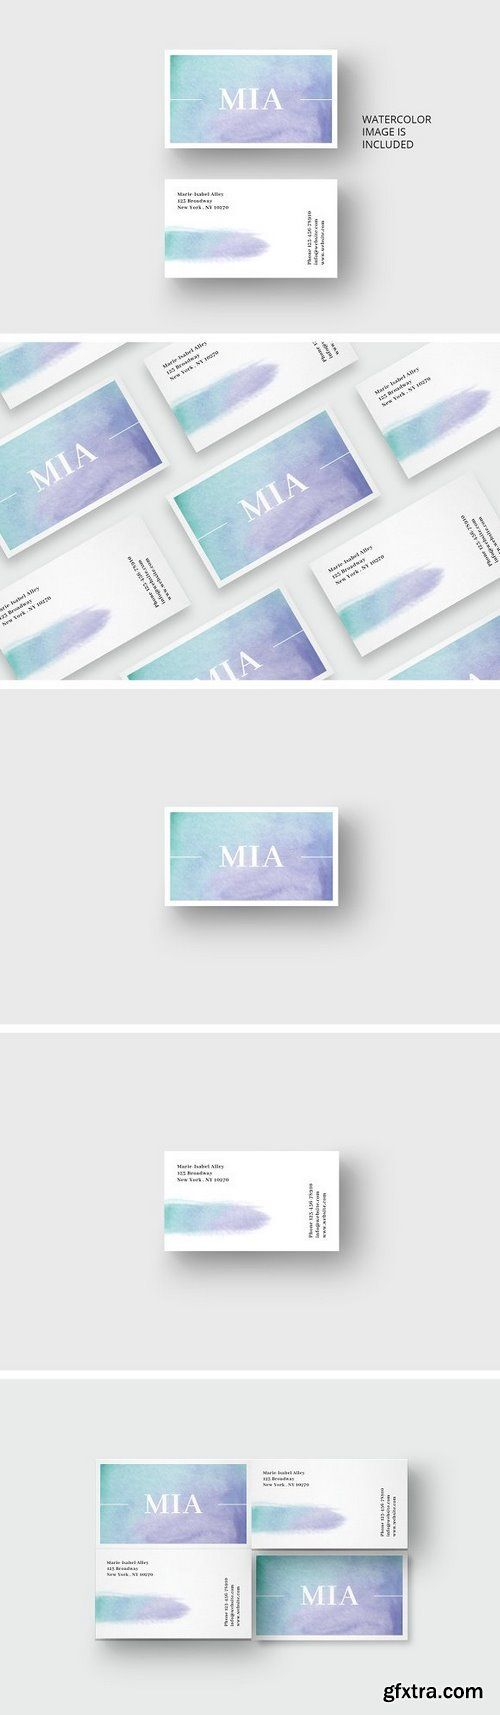 Cm watercolor business card template 1688131 photoshop cm watercolor business card template 1688131 reheart Images